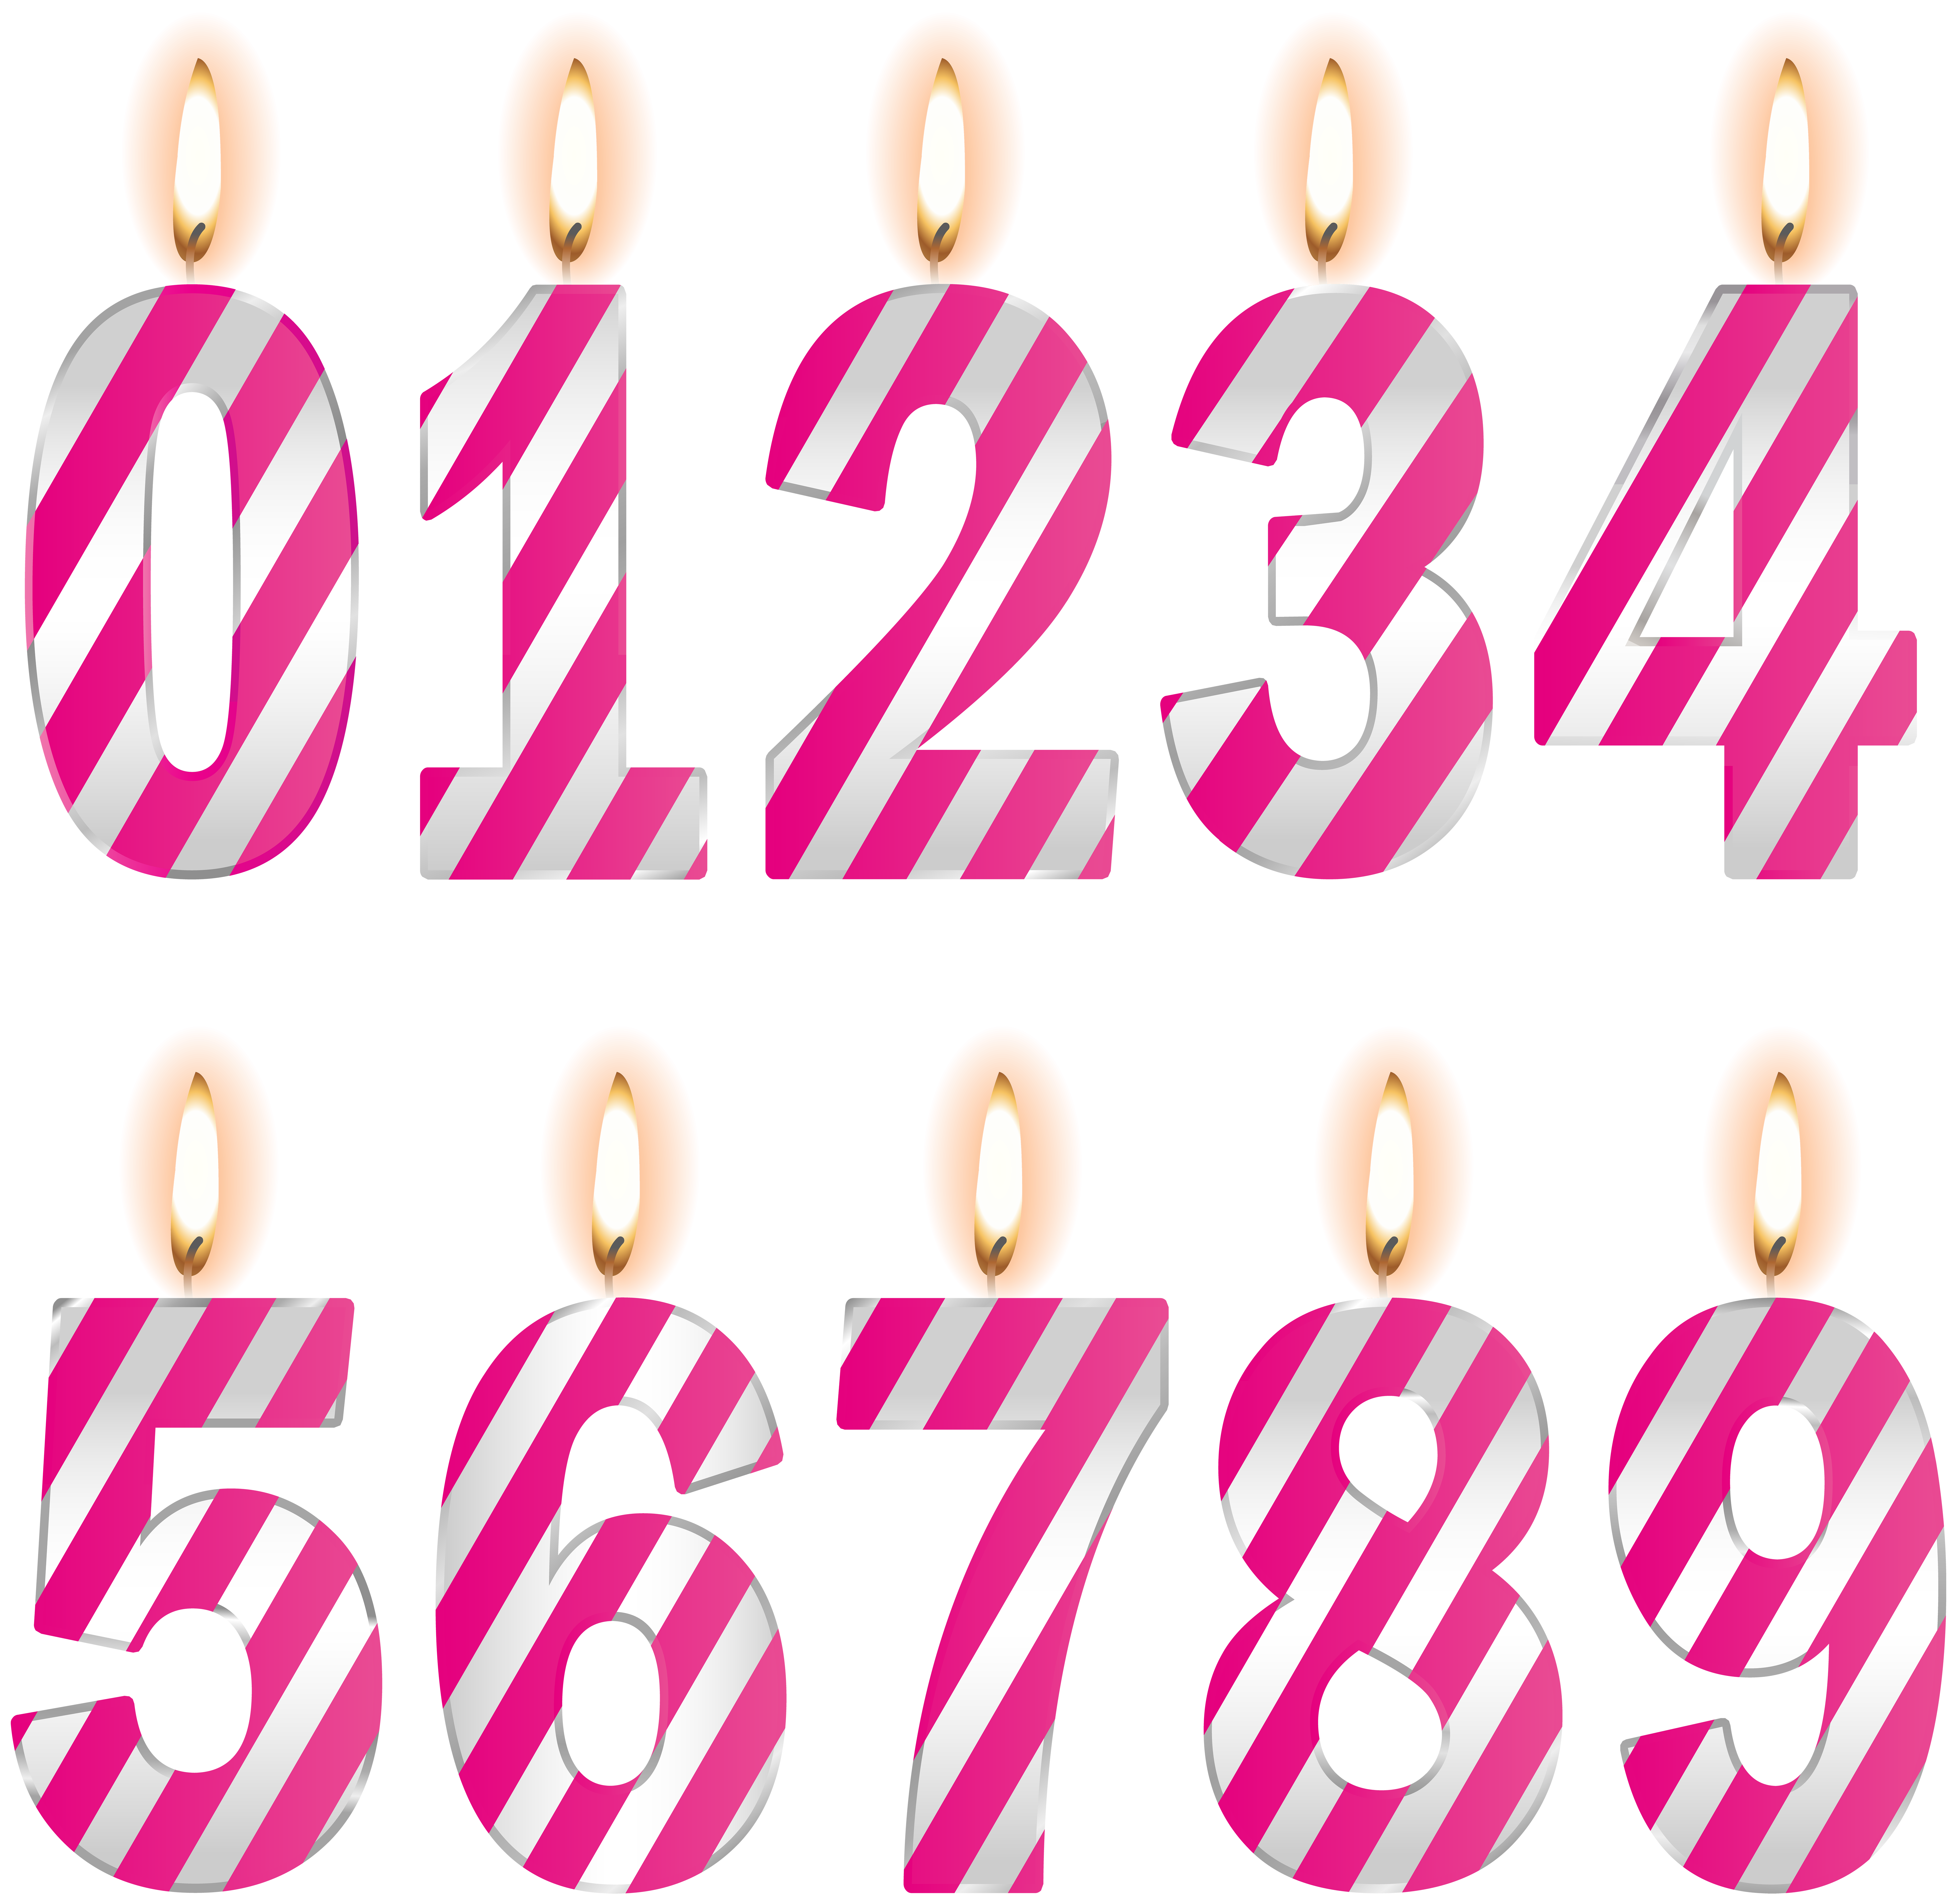 Facebook clipart halloween birthday graphic freeuse library Image file formats Lossless compression - Numbers Birthday Candles ... graphic freeuse library